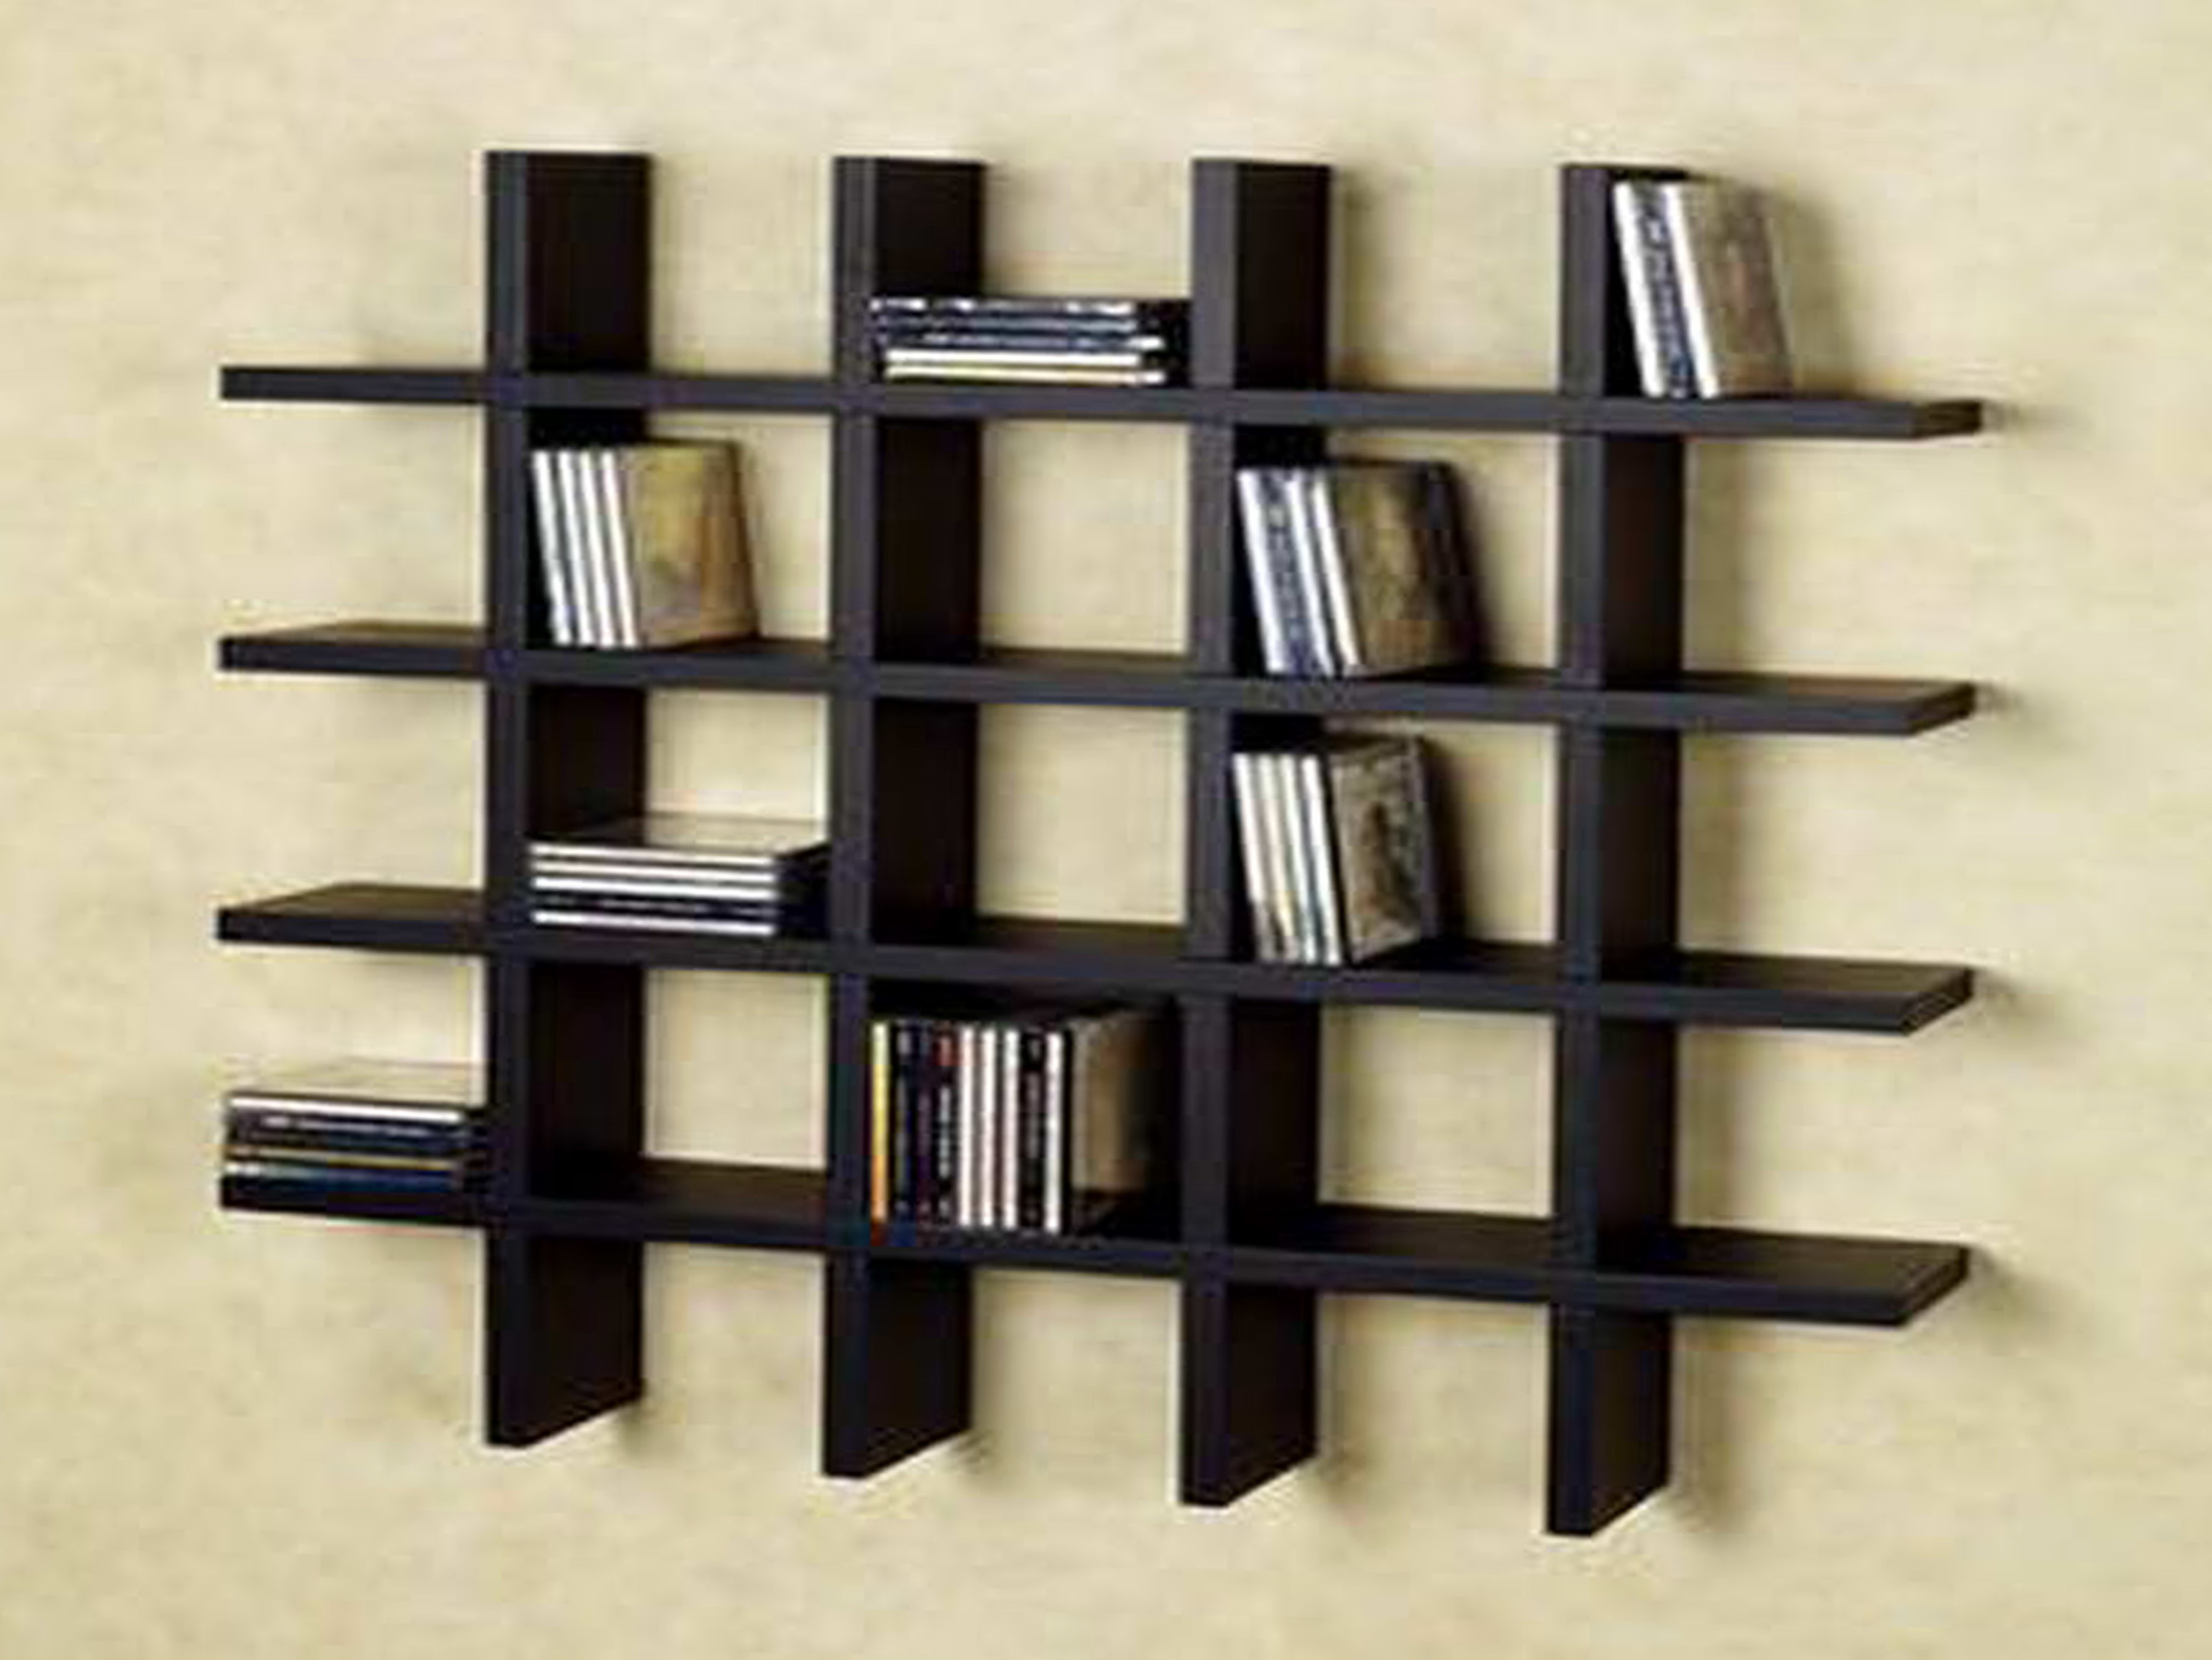 Permalink to Wall Mounted Bookshelves Designs